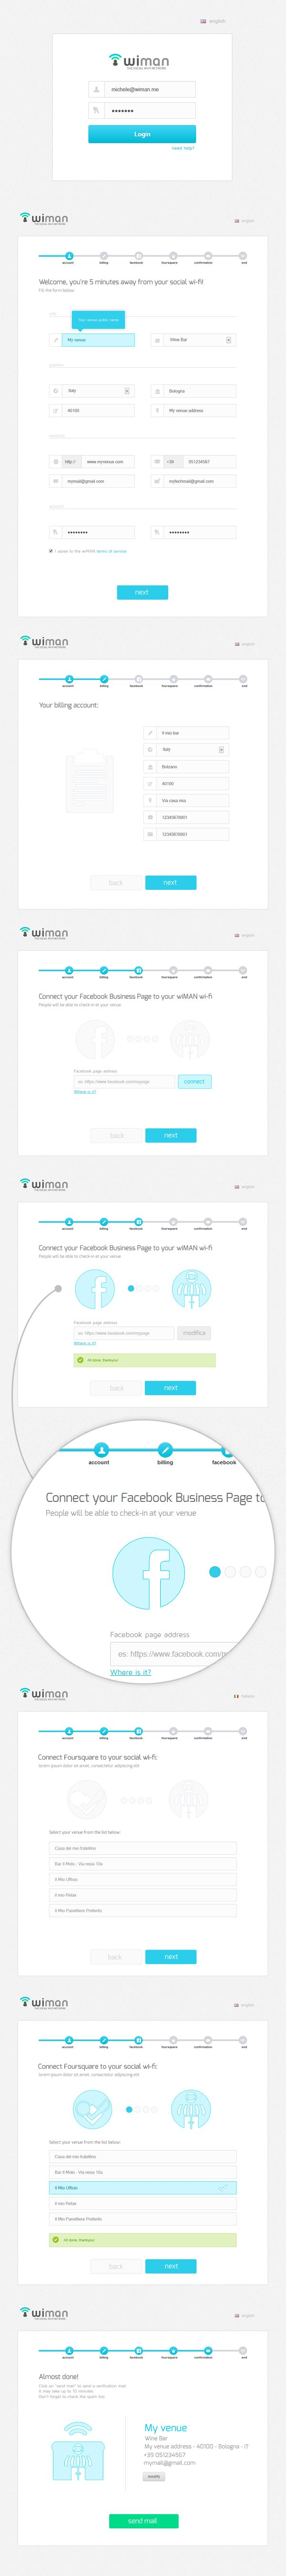 #form #wizard #register Wiman registration wizard by Alessio De Feudis, via Behance